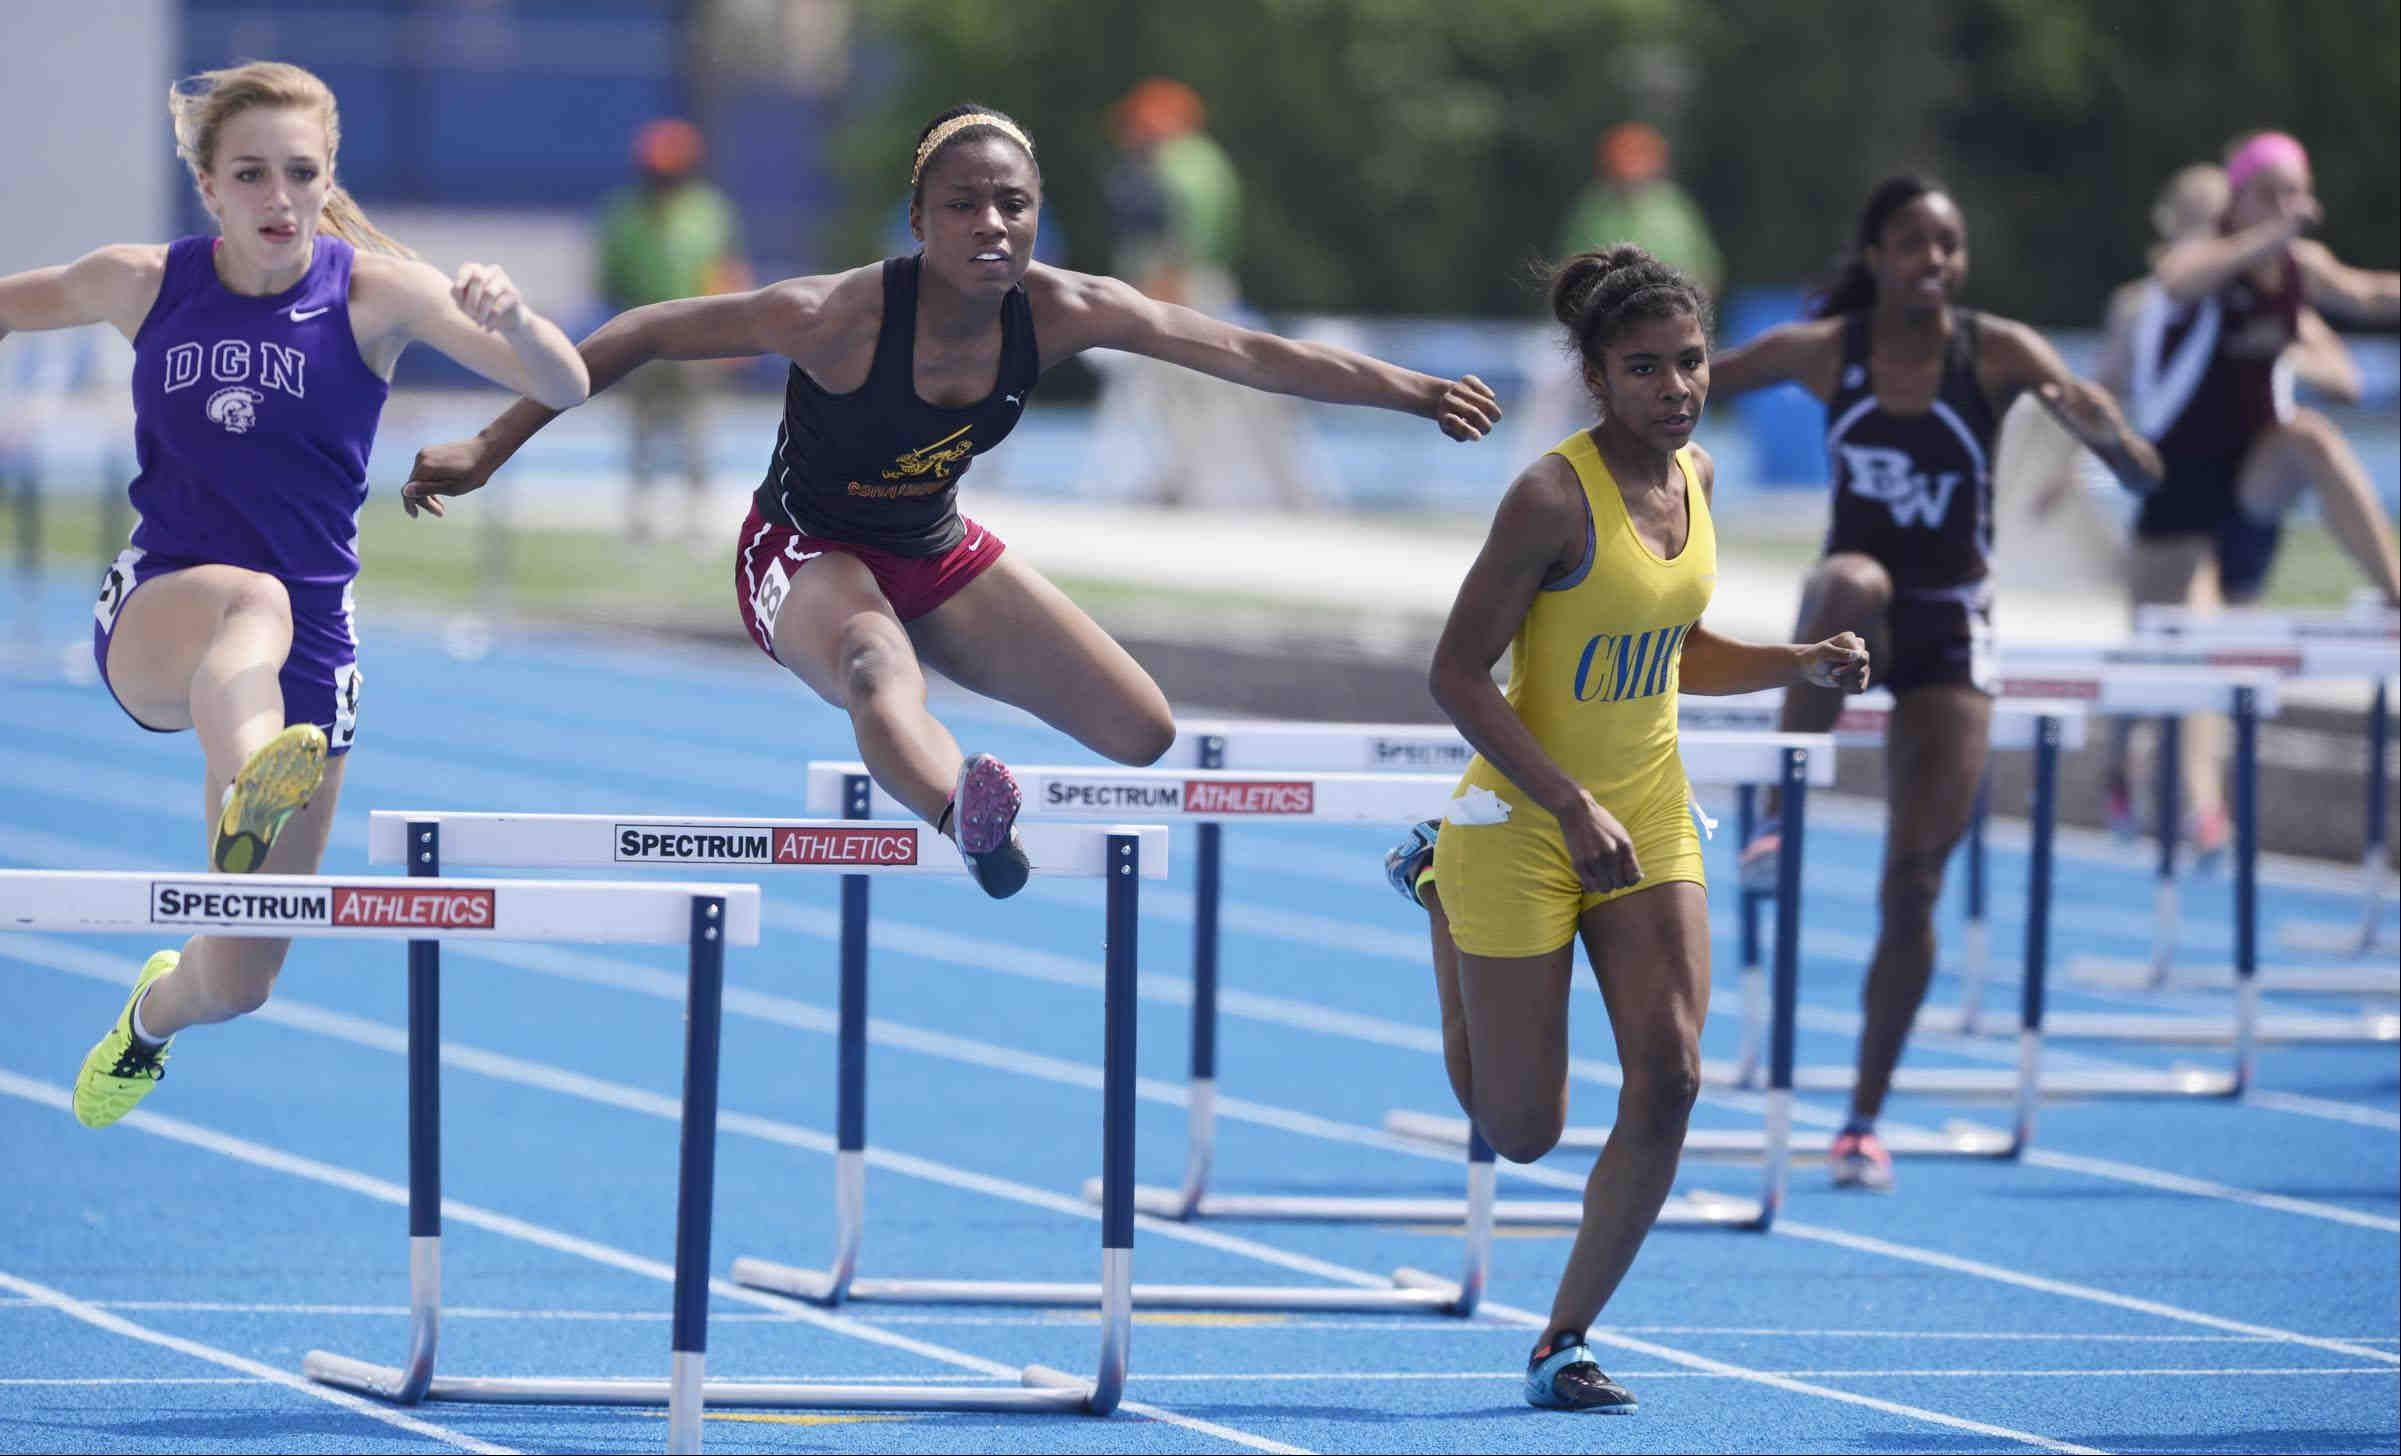 Schaumburg's Darneisha Spann clears the second obstacle in the 300-meter low hurdles Friday at the Class 3A girls state track and field preliminaries.